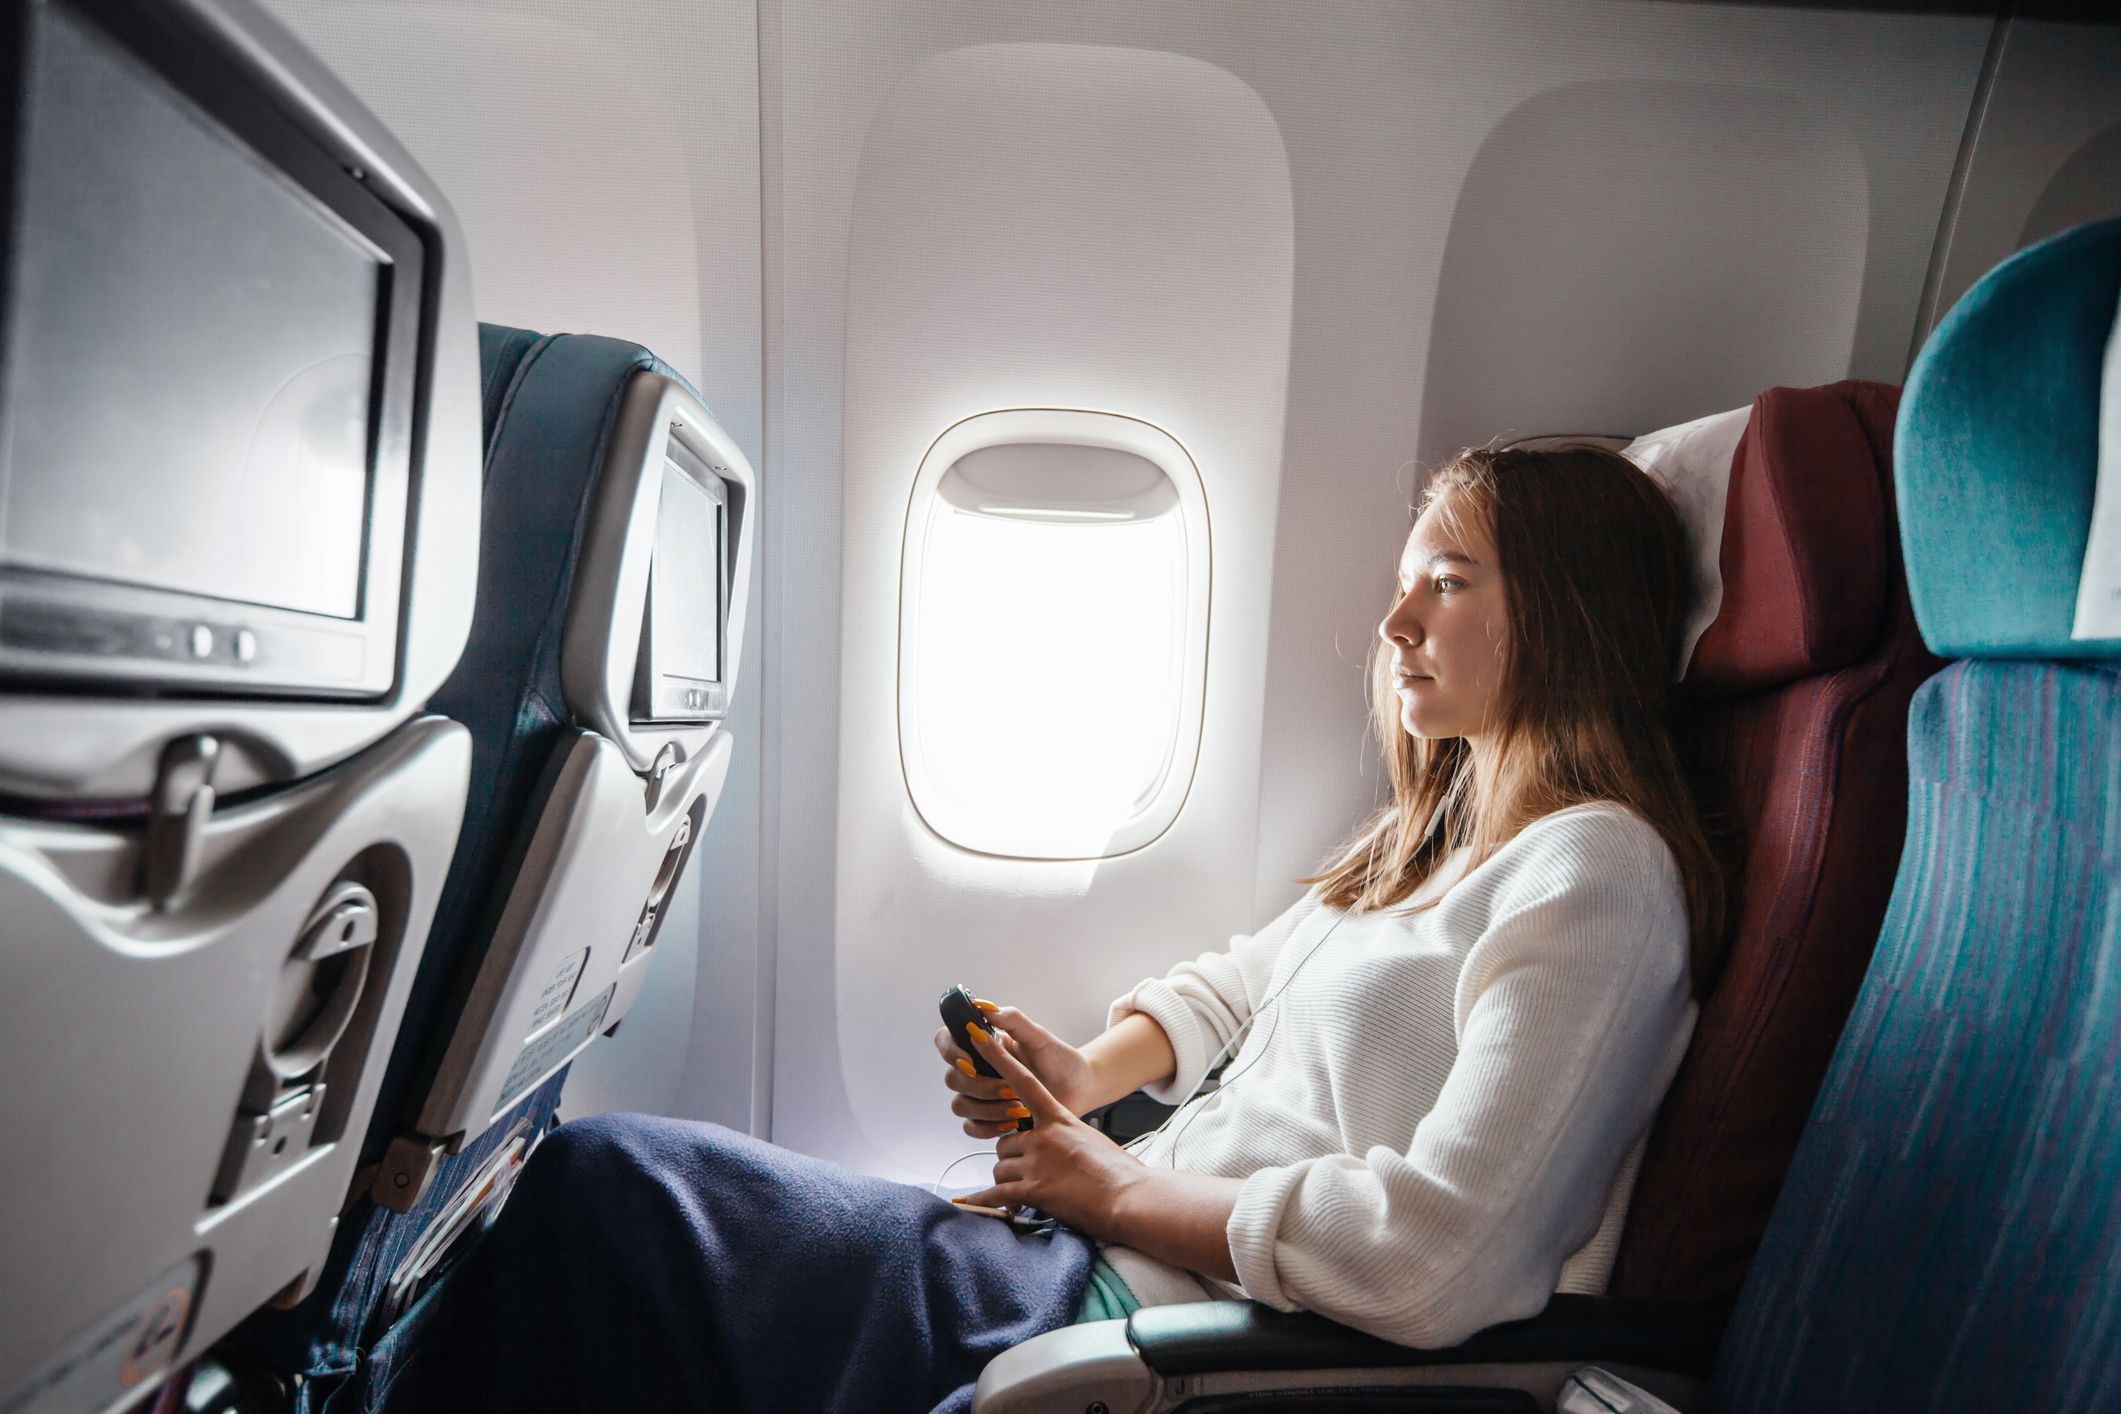 Unexpected Airline Fees Include Pillows, Blankets, Early